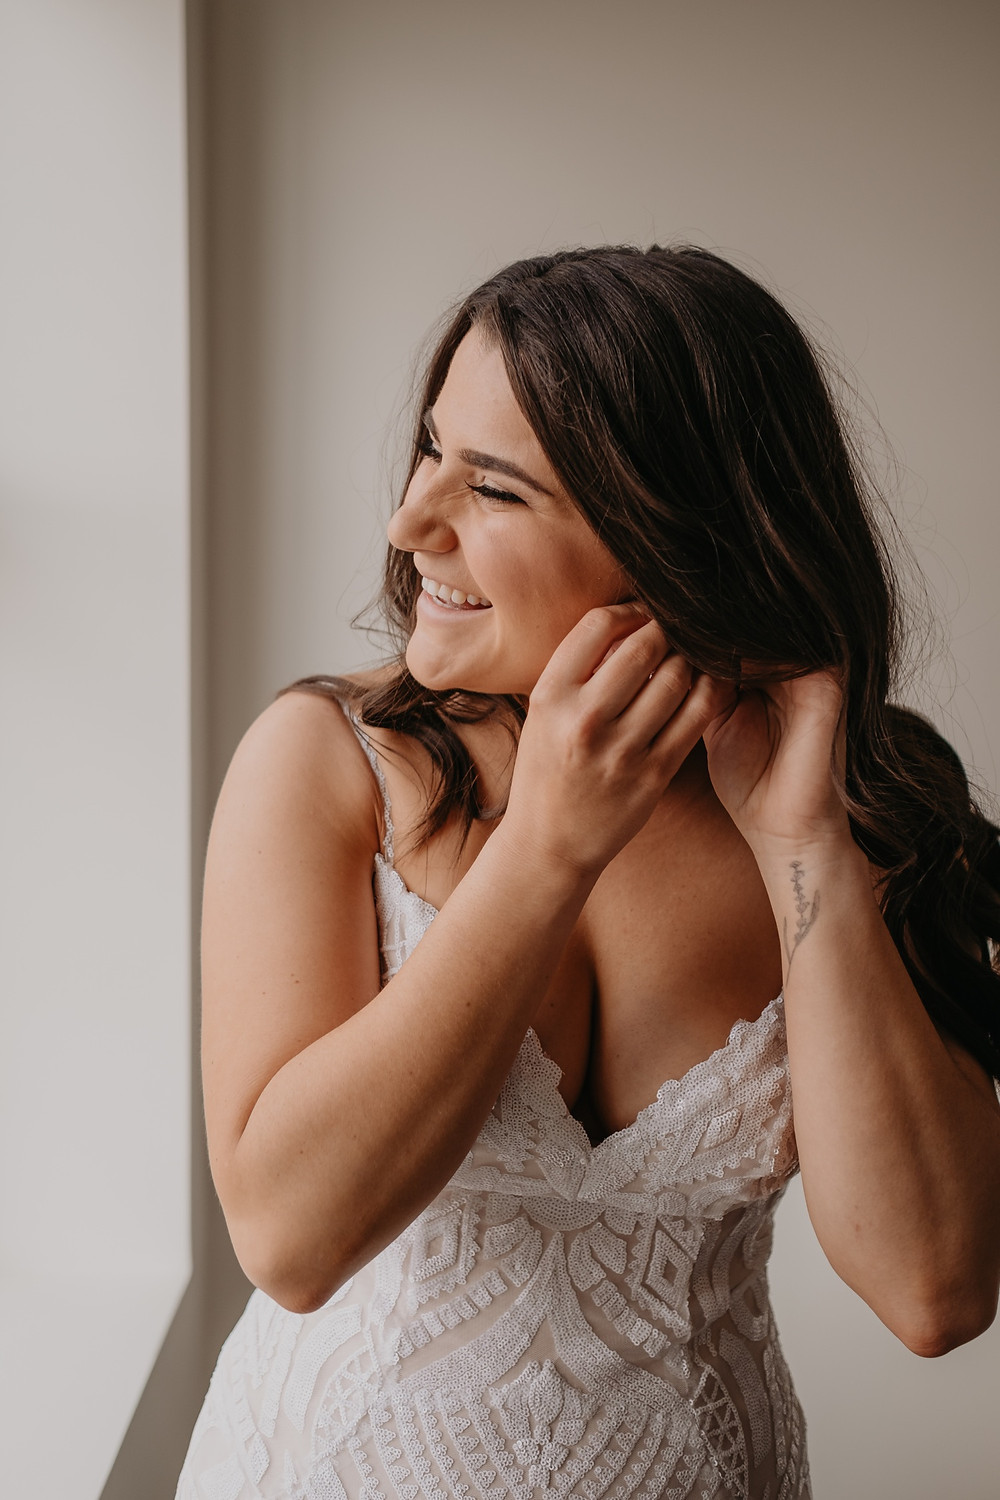 Bride putting on earrings for wedding day. Photographed by Nicole Leanne Photography.